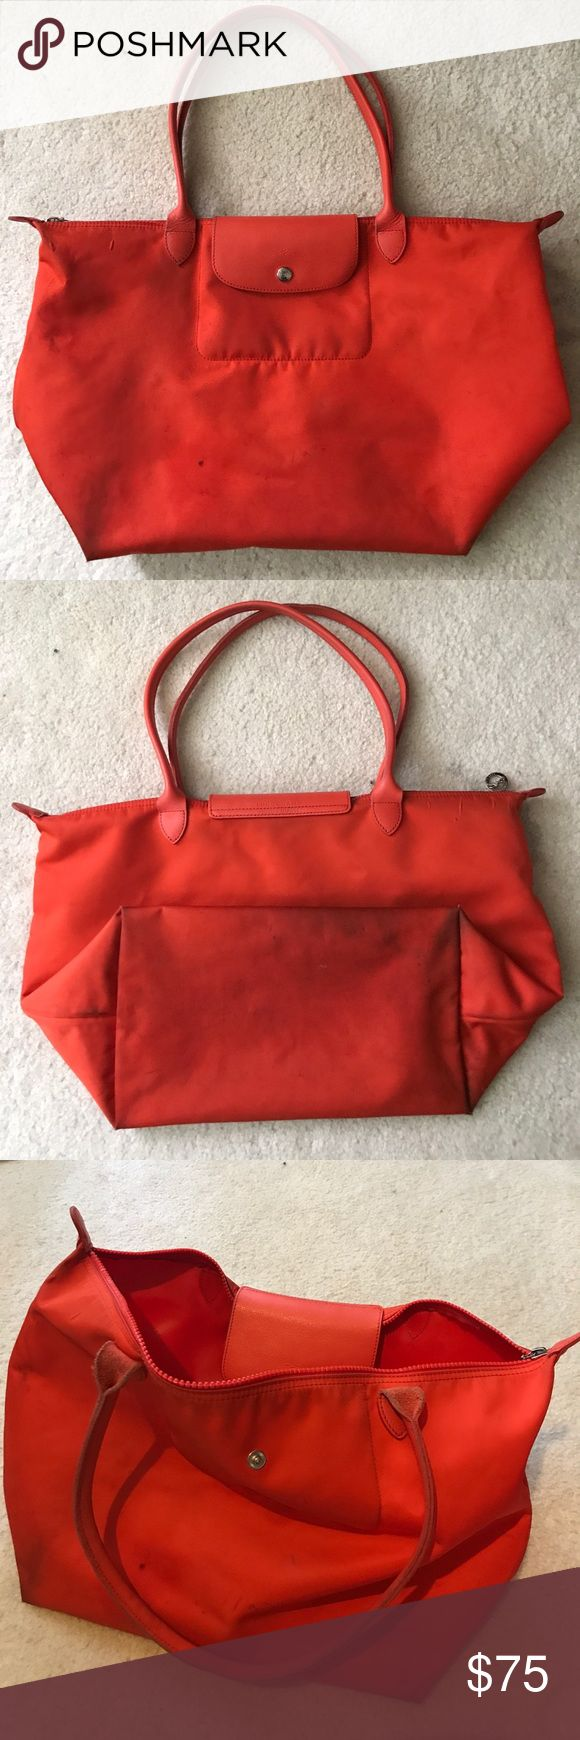 Longchamp Large Le Pliage Neo Nylon Tote Orange Beautiful vibrant orange color, very well used. Majority of the staining is at the back and under the bag. The handles have softened to a comfortable leather. Longchamp Bags Shoulder Bags